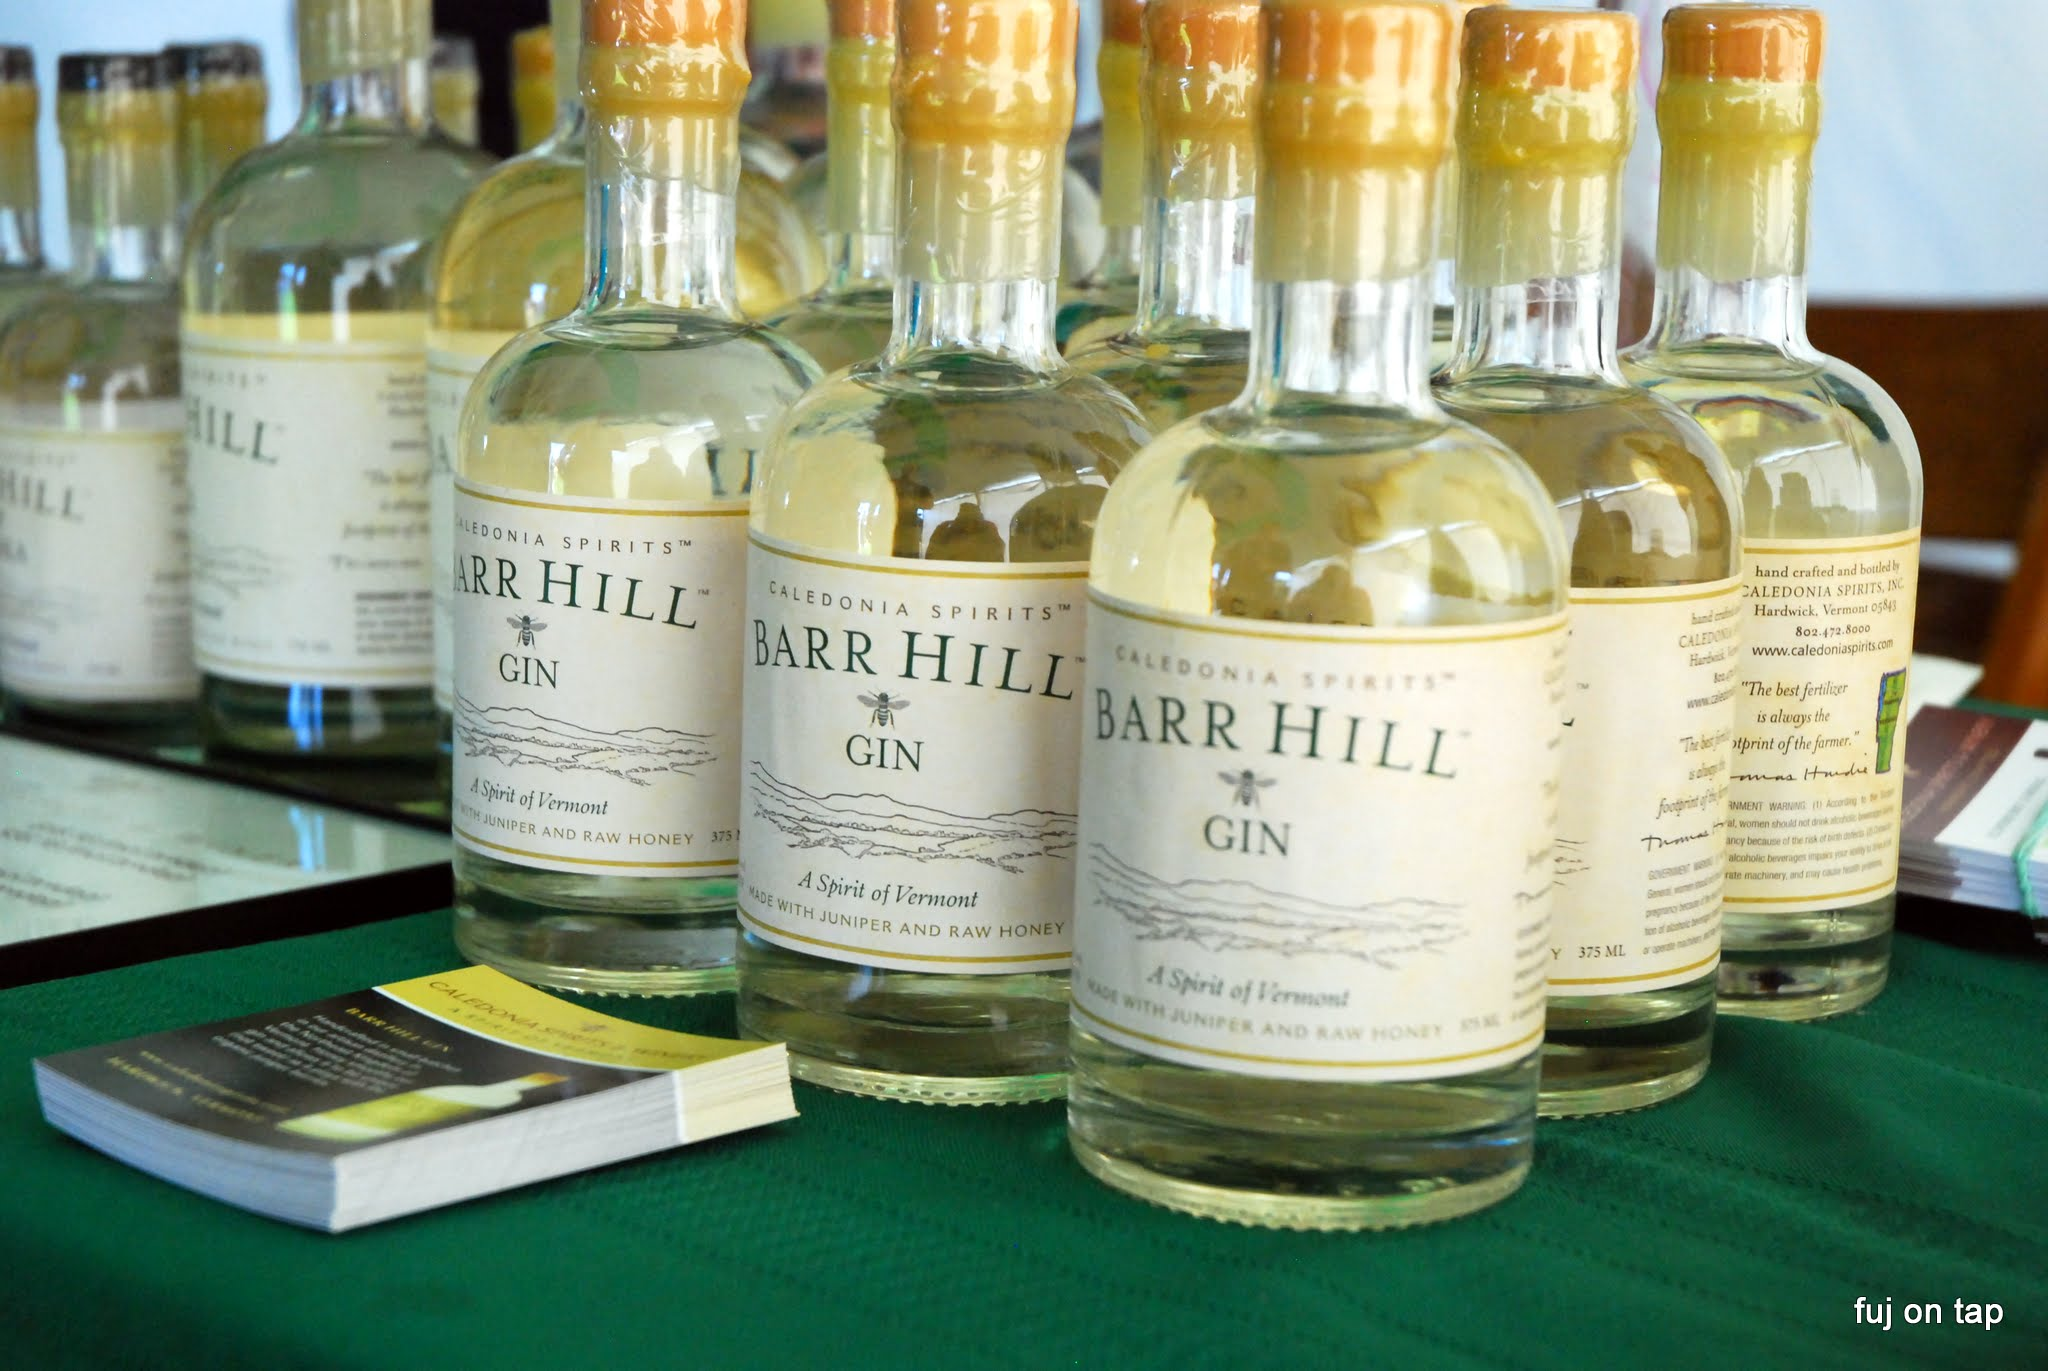 Bar Hill Gin